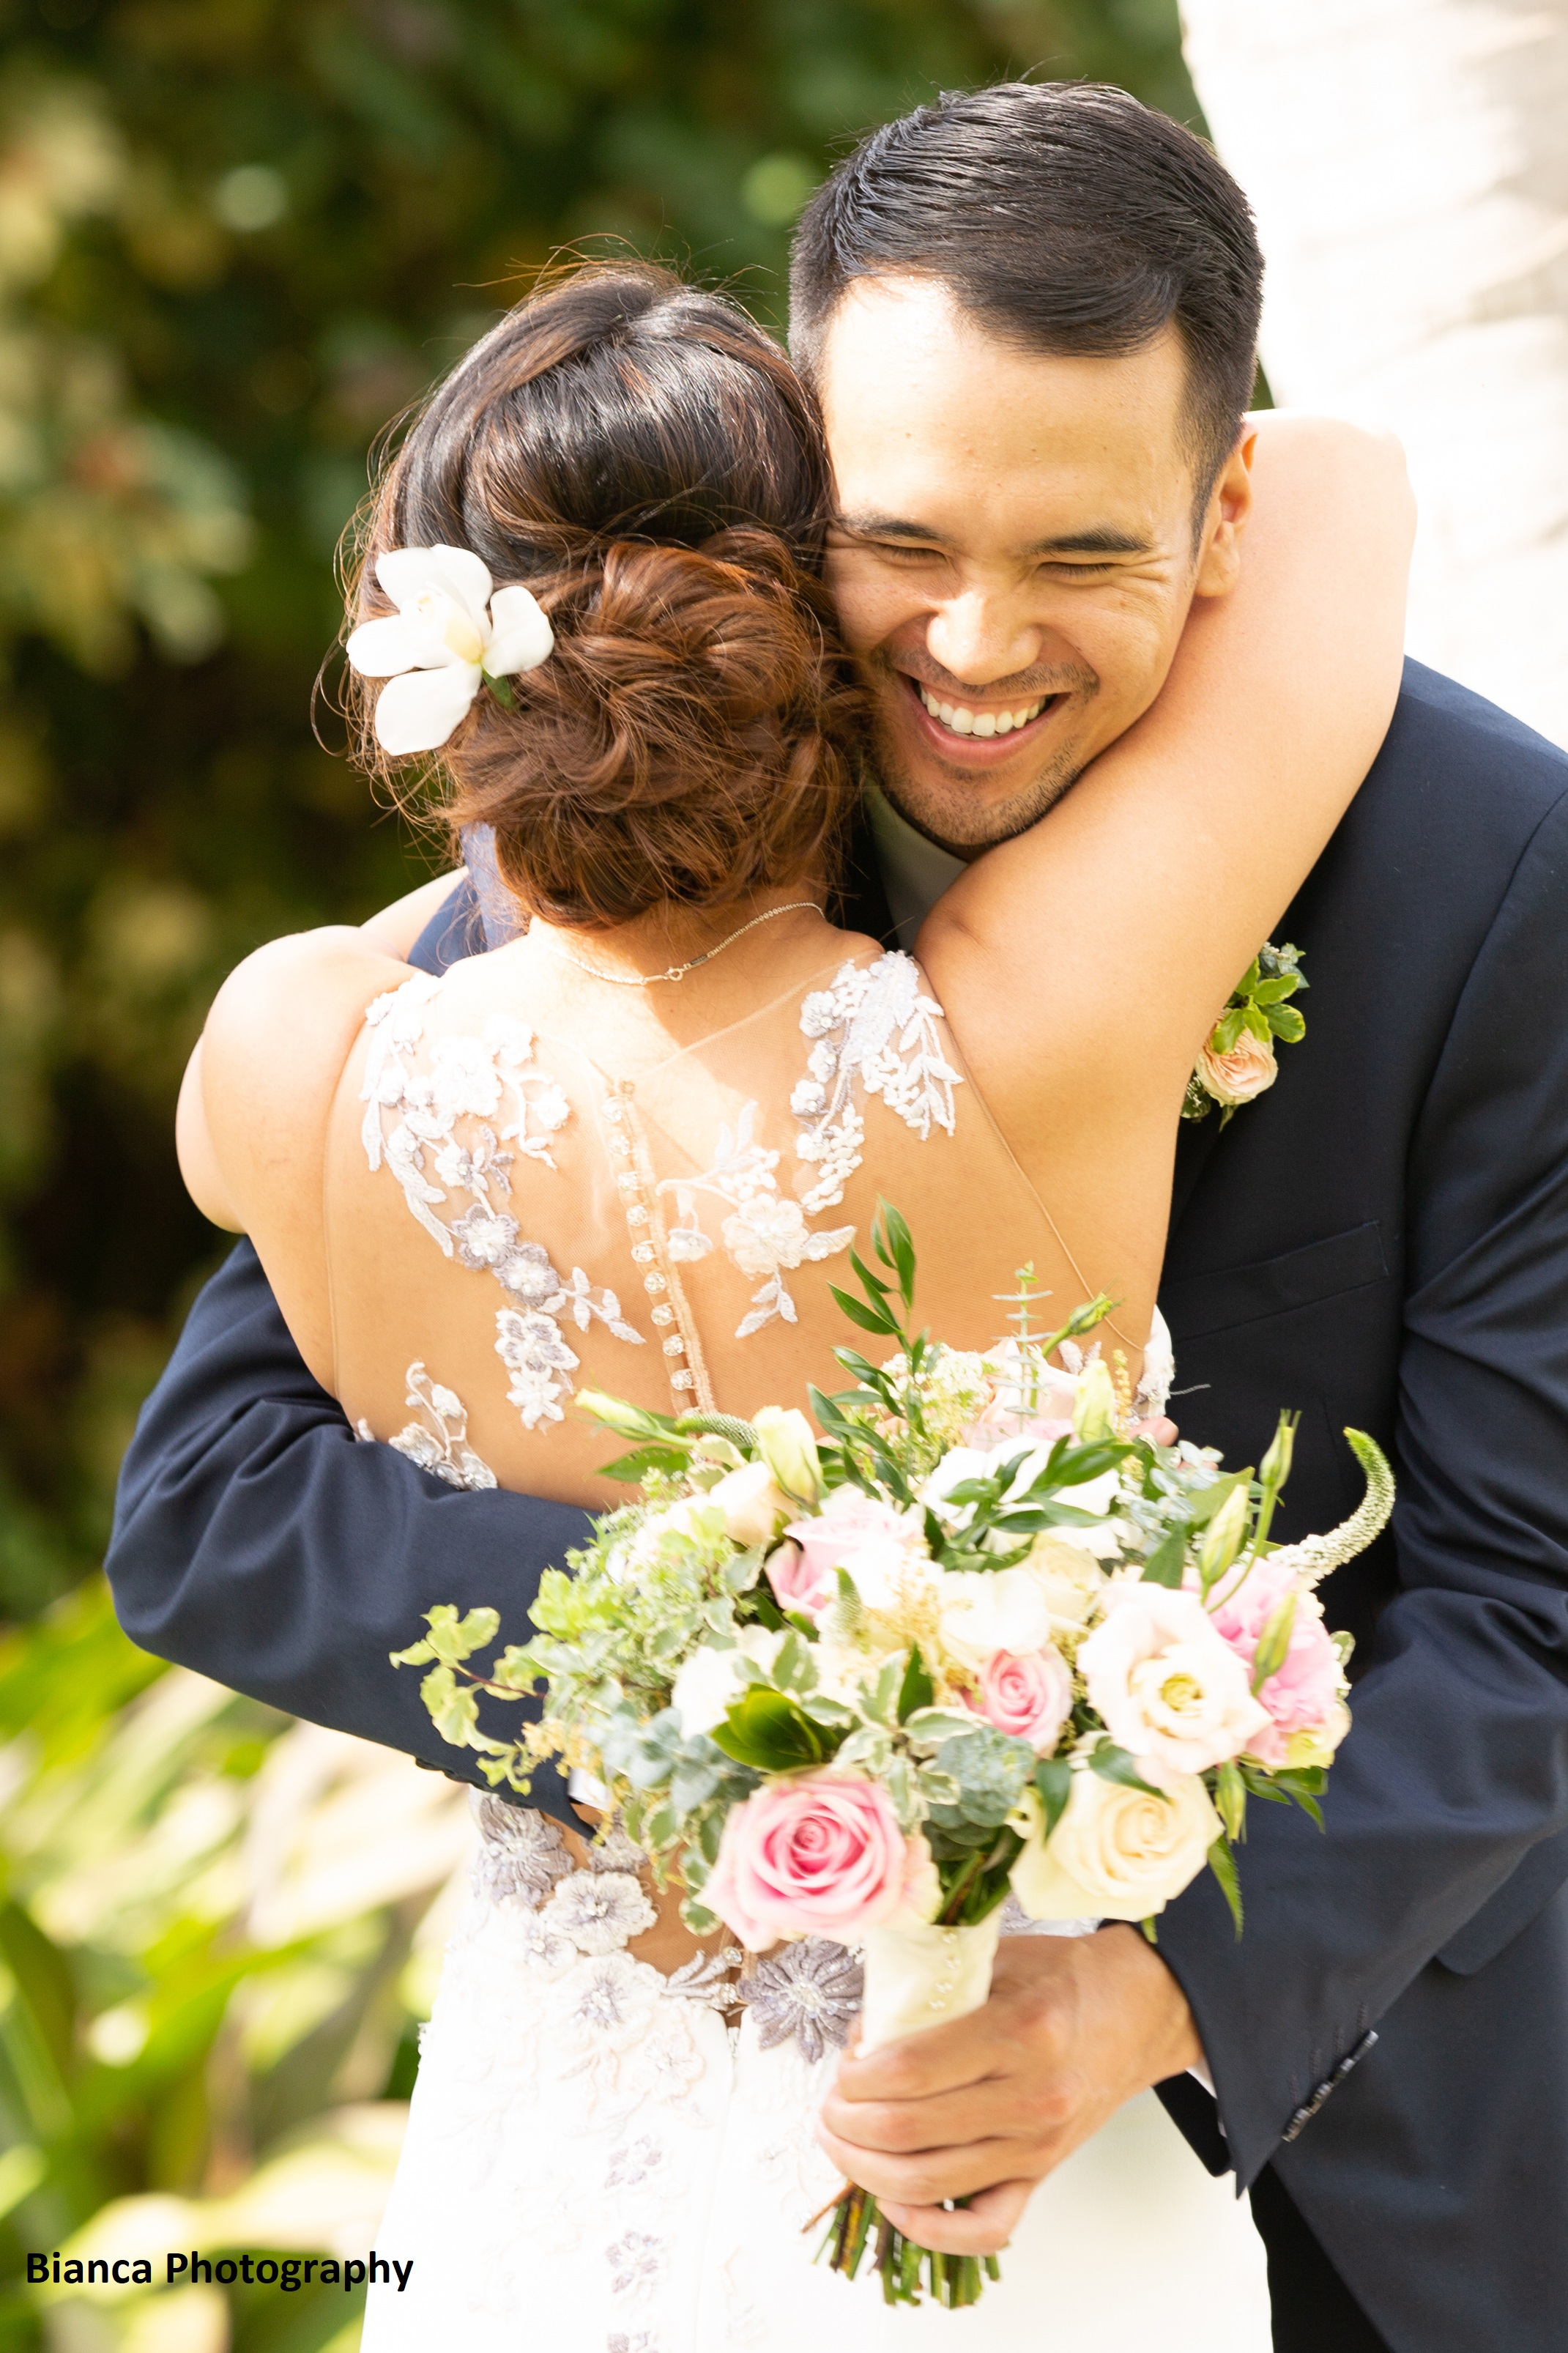 W_0387 (Bianca Photography).jpg